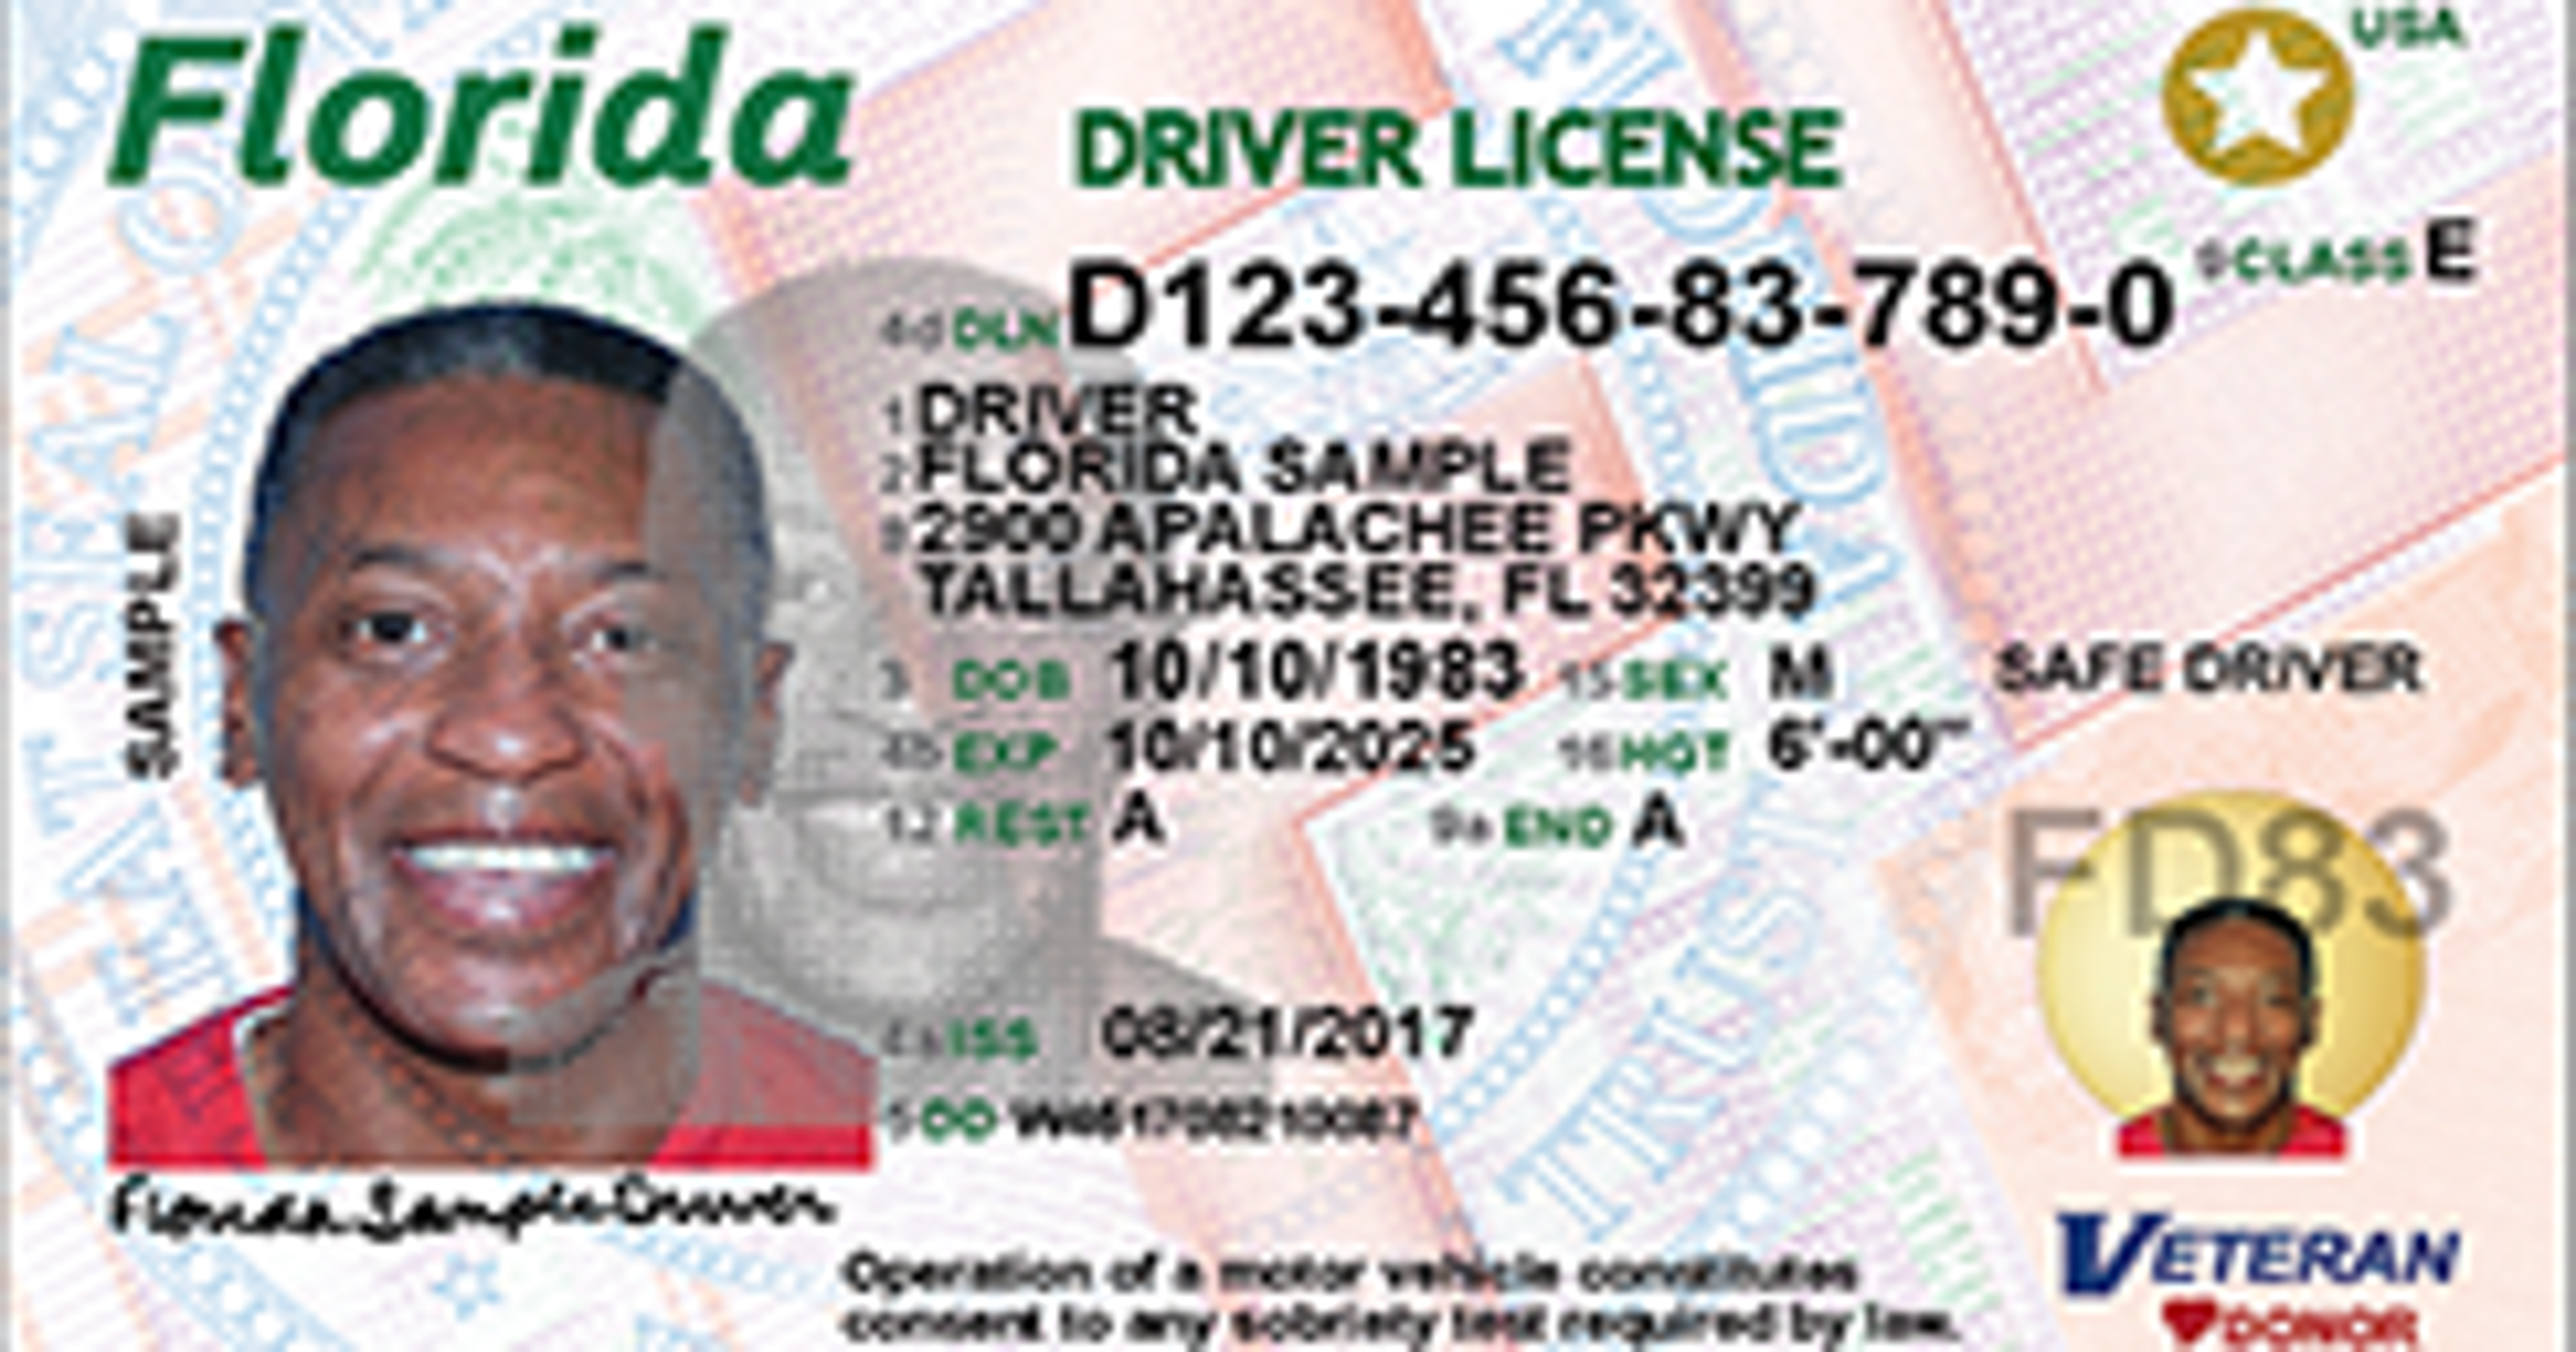 Driver's Up Id For New Thumb Ready Get Cards Licenses